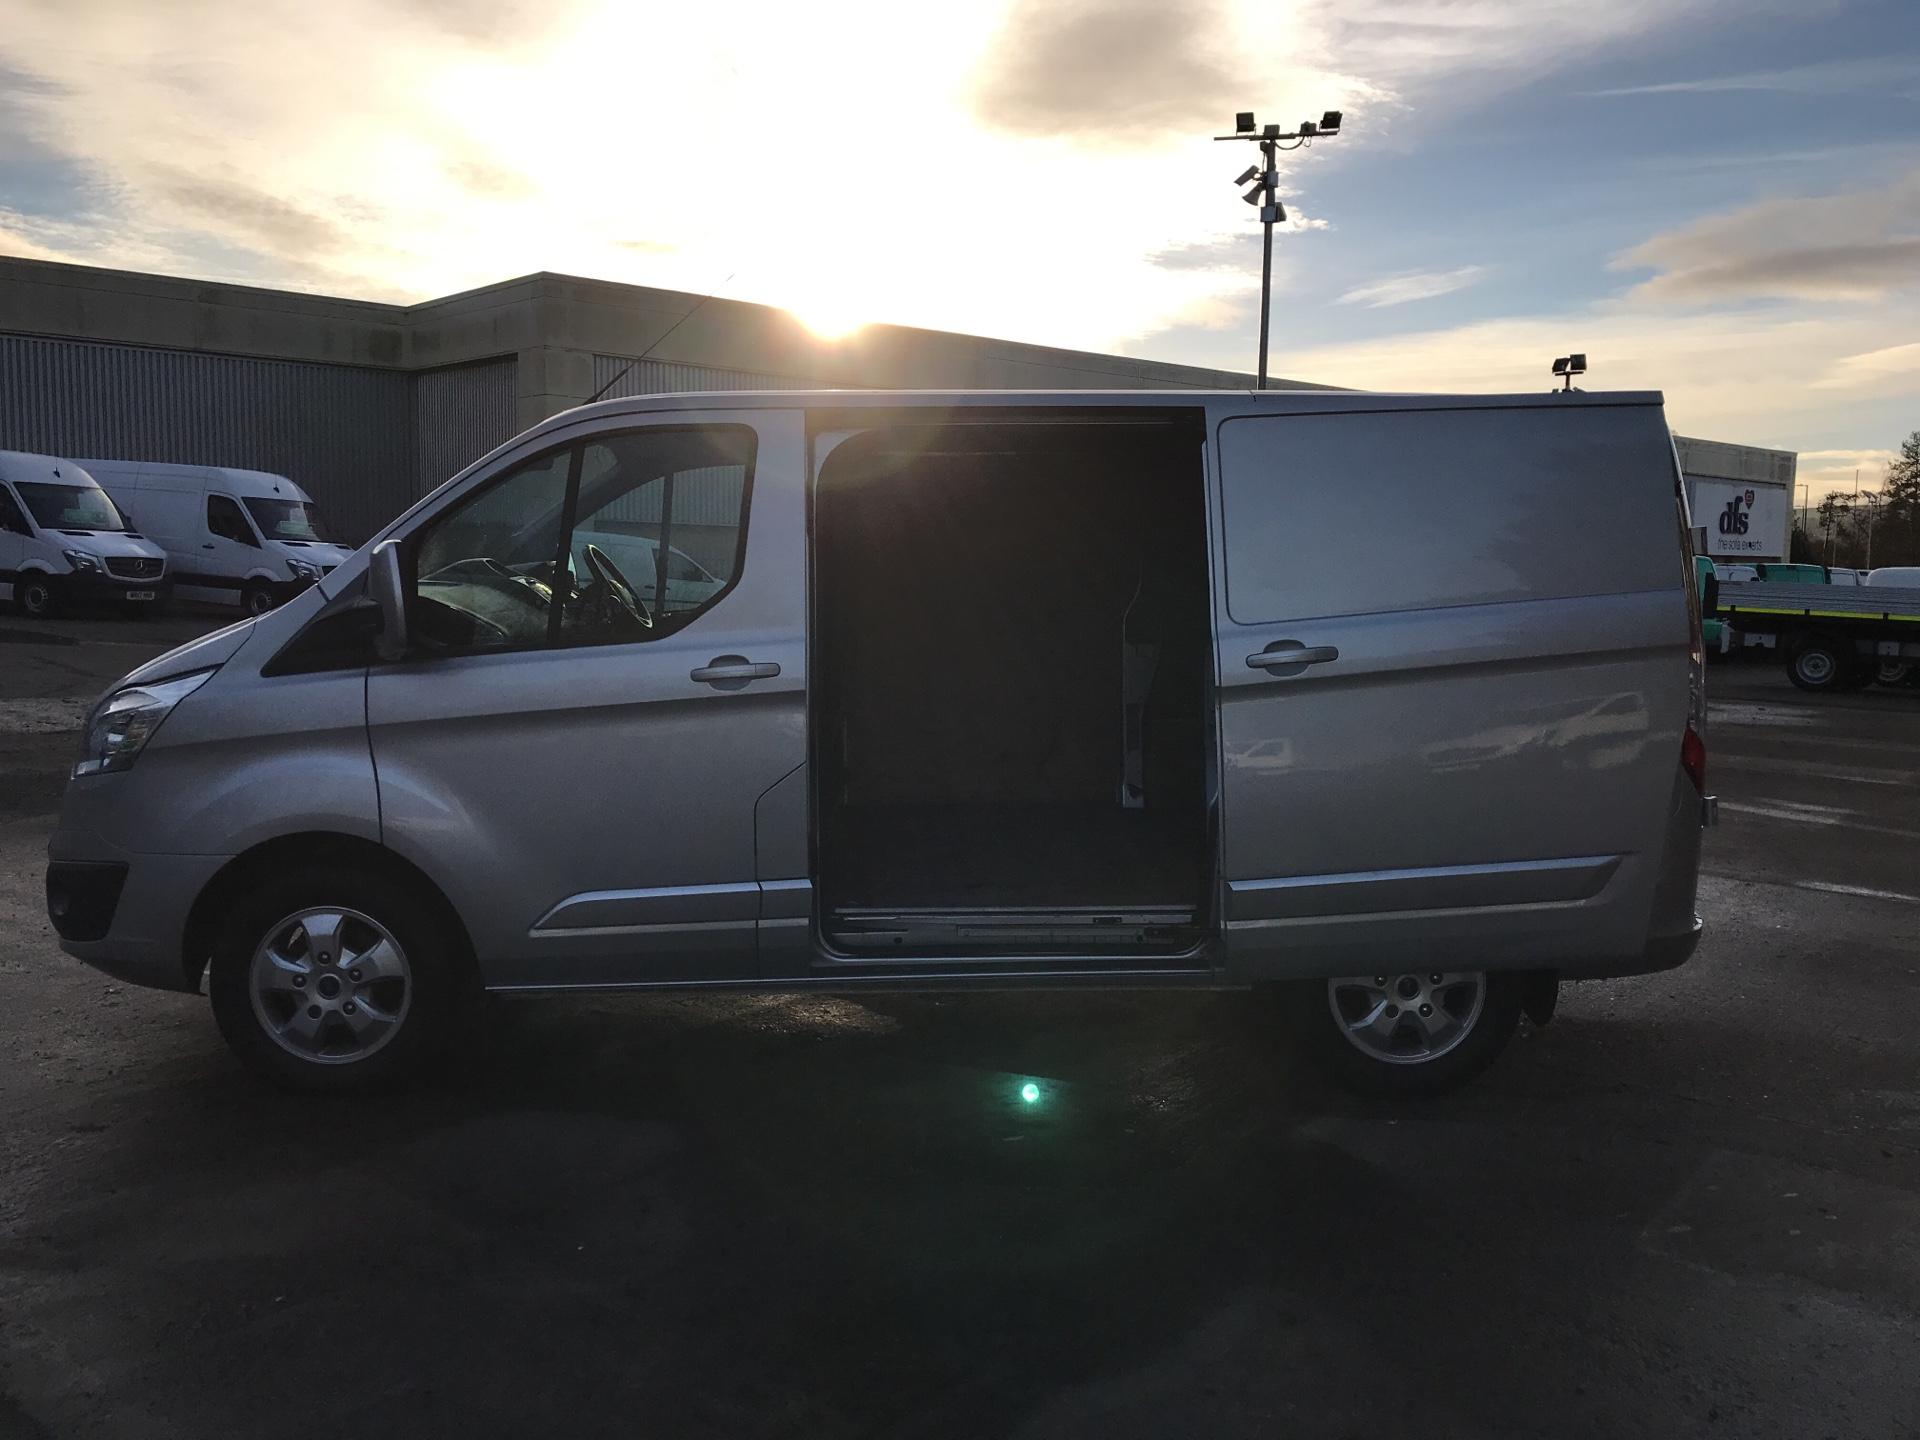 2017 Ford Transit Custom 270 L1 DIESEL FWD 2.0 TDCI 130PS LOW ROOF LIMITED VAN EURO 6 (CY67AVD) Image 25